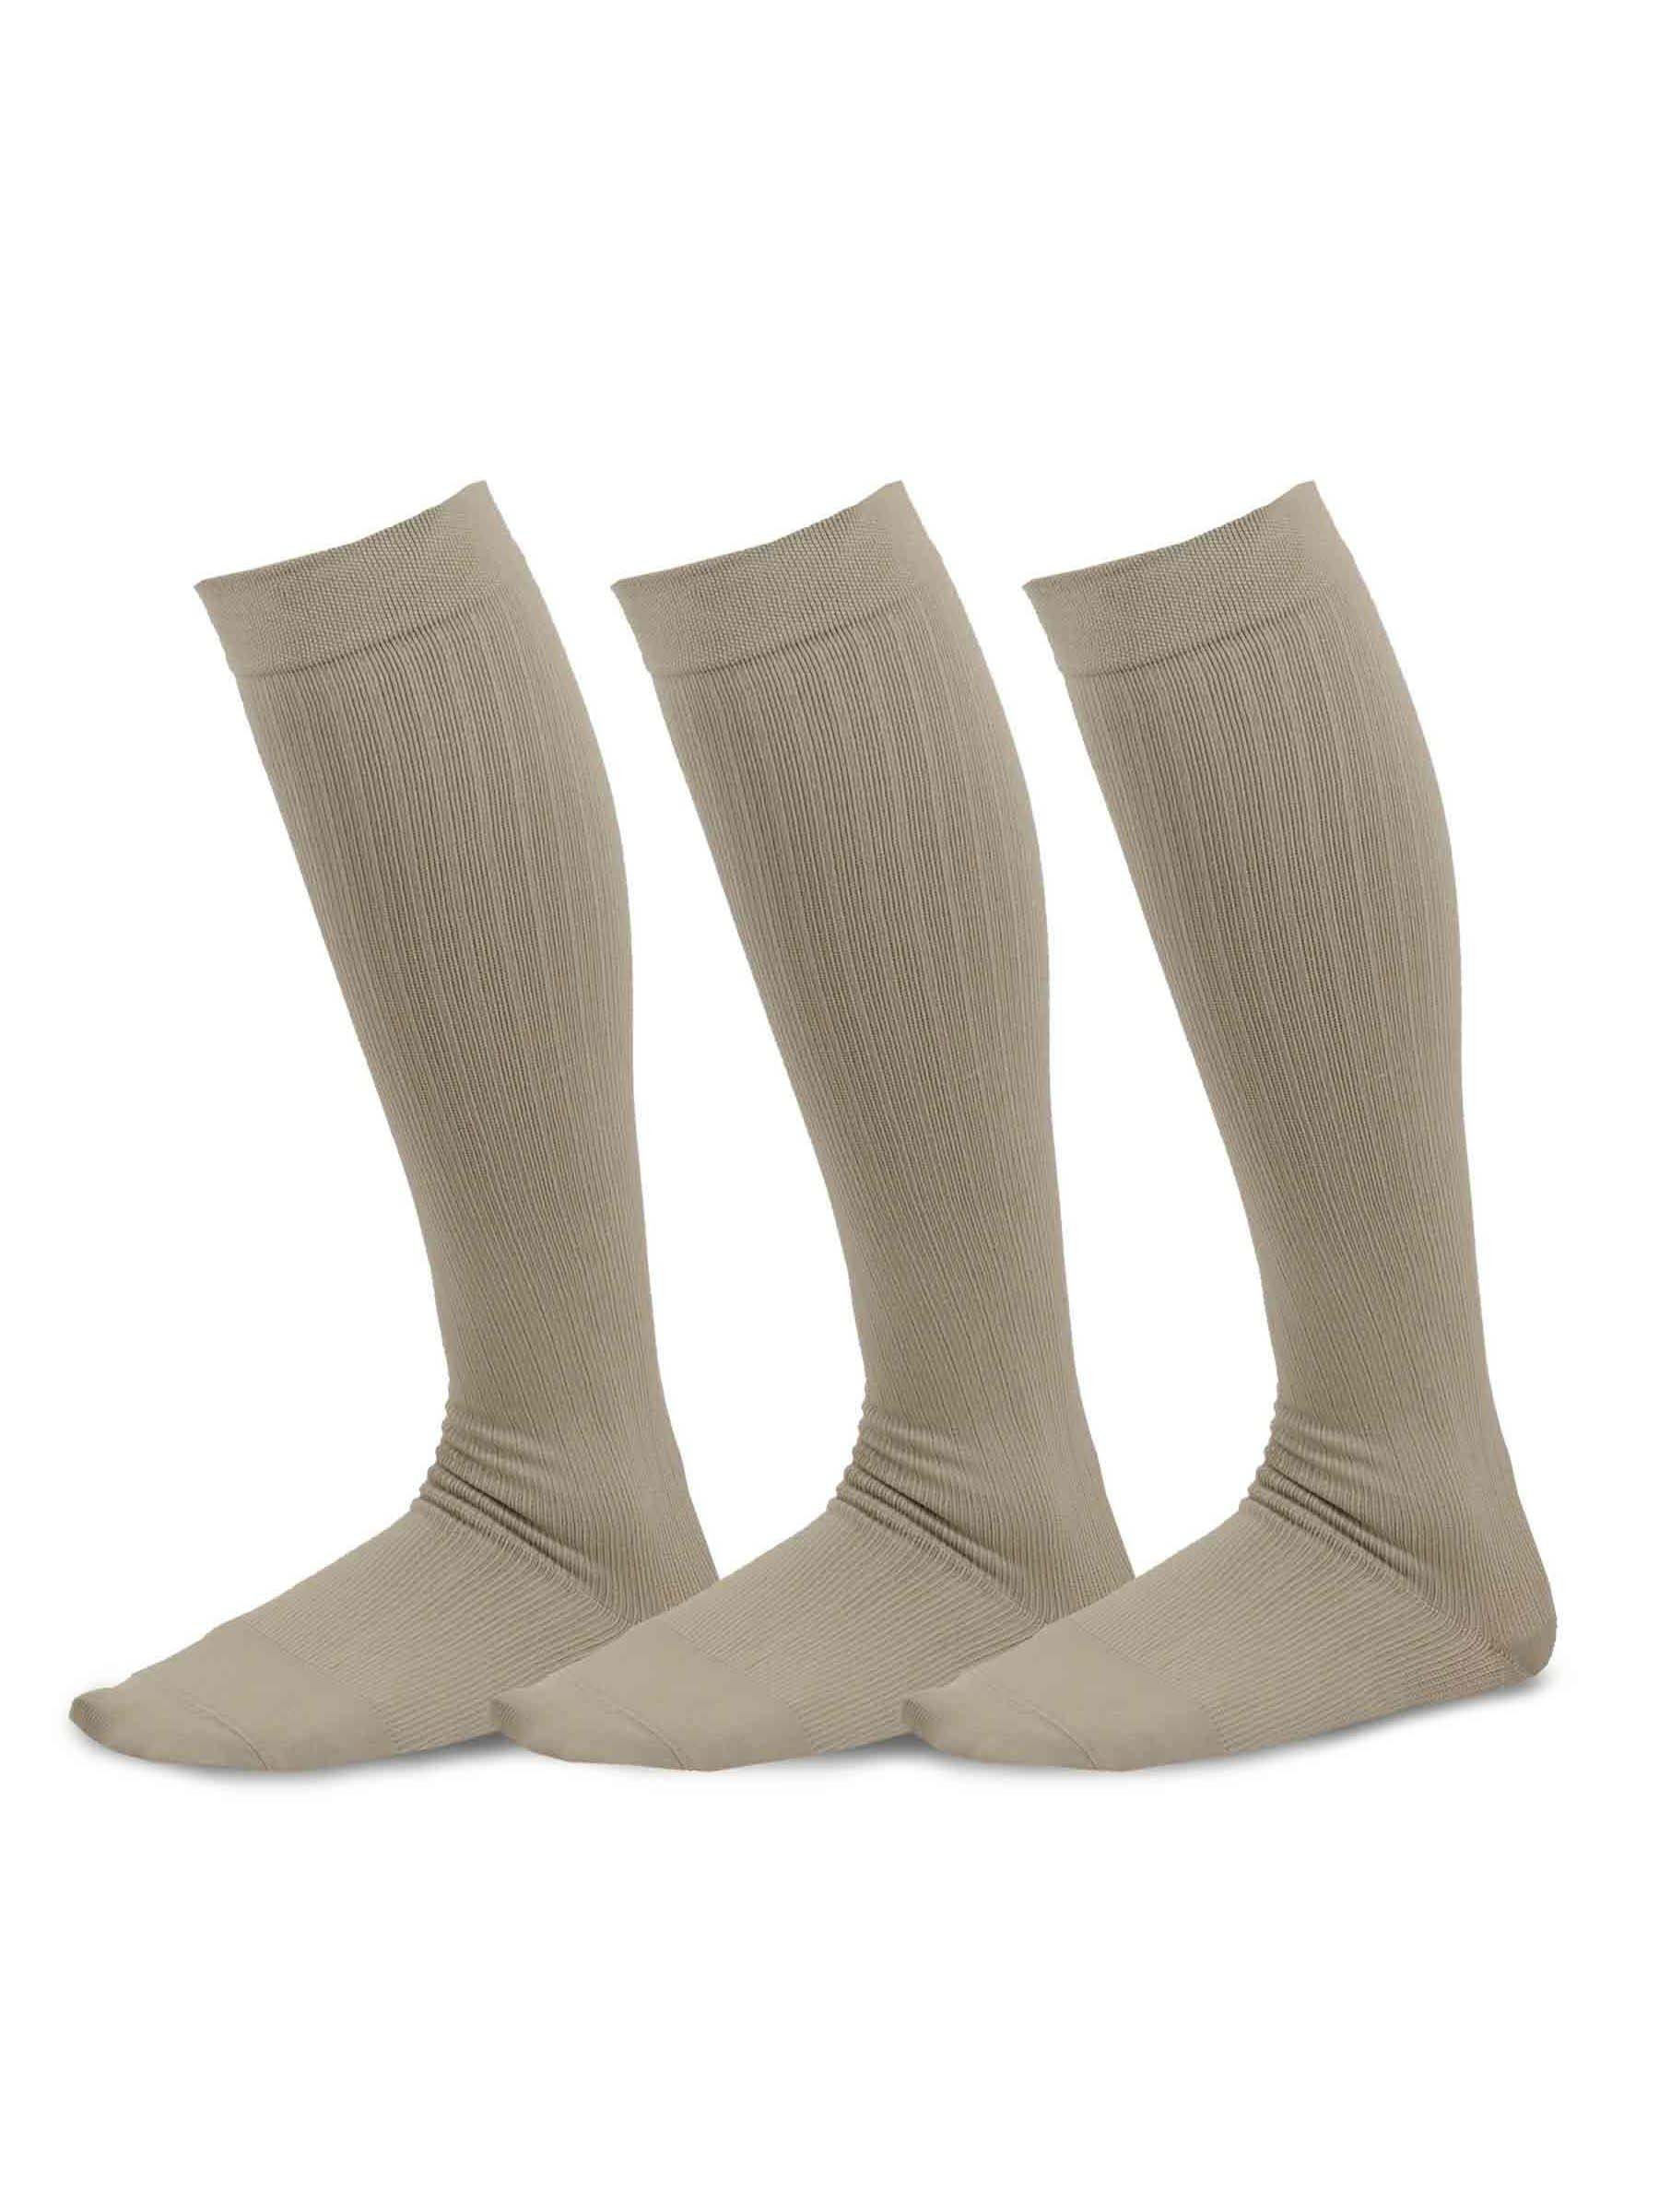 Medium TeeHee Viscose from Bamboo Compression Knee High Socks with Rib 3-Pack , White 9-11